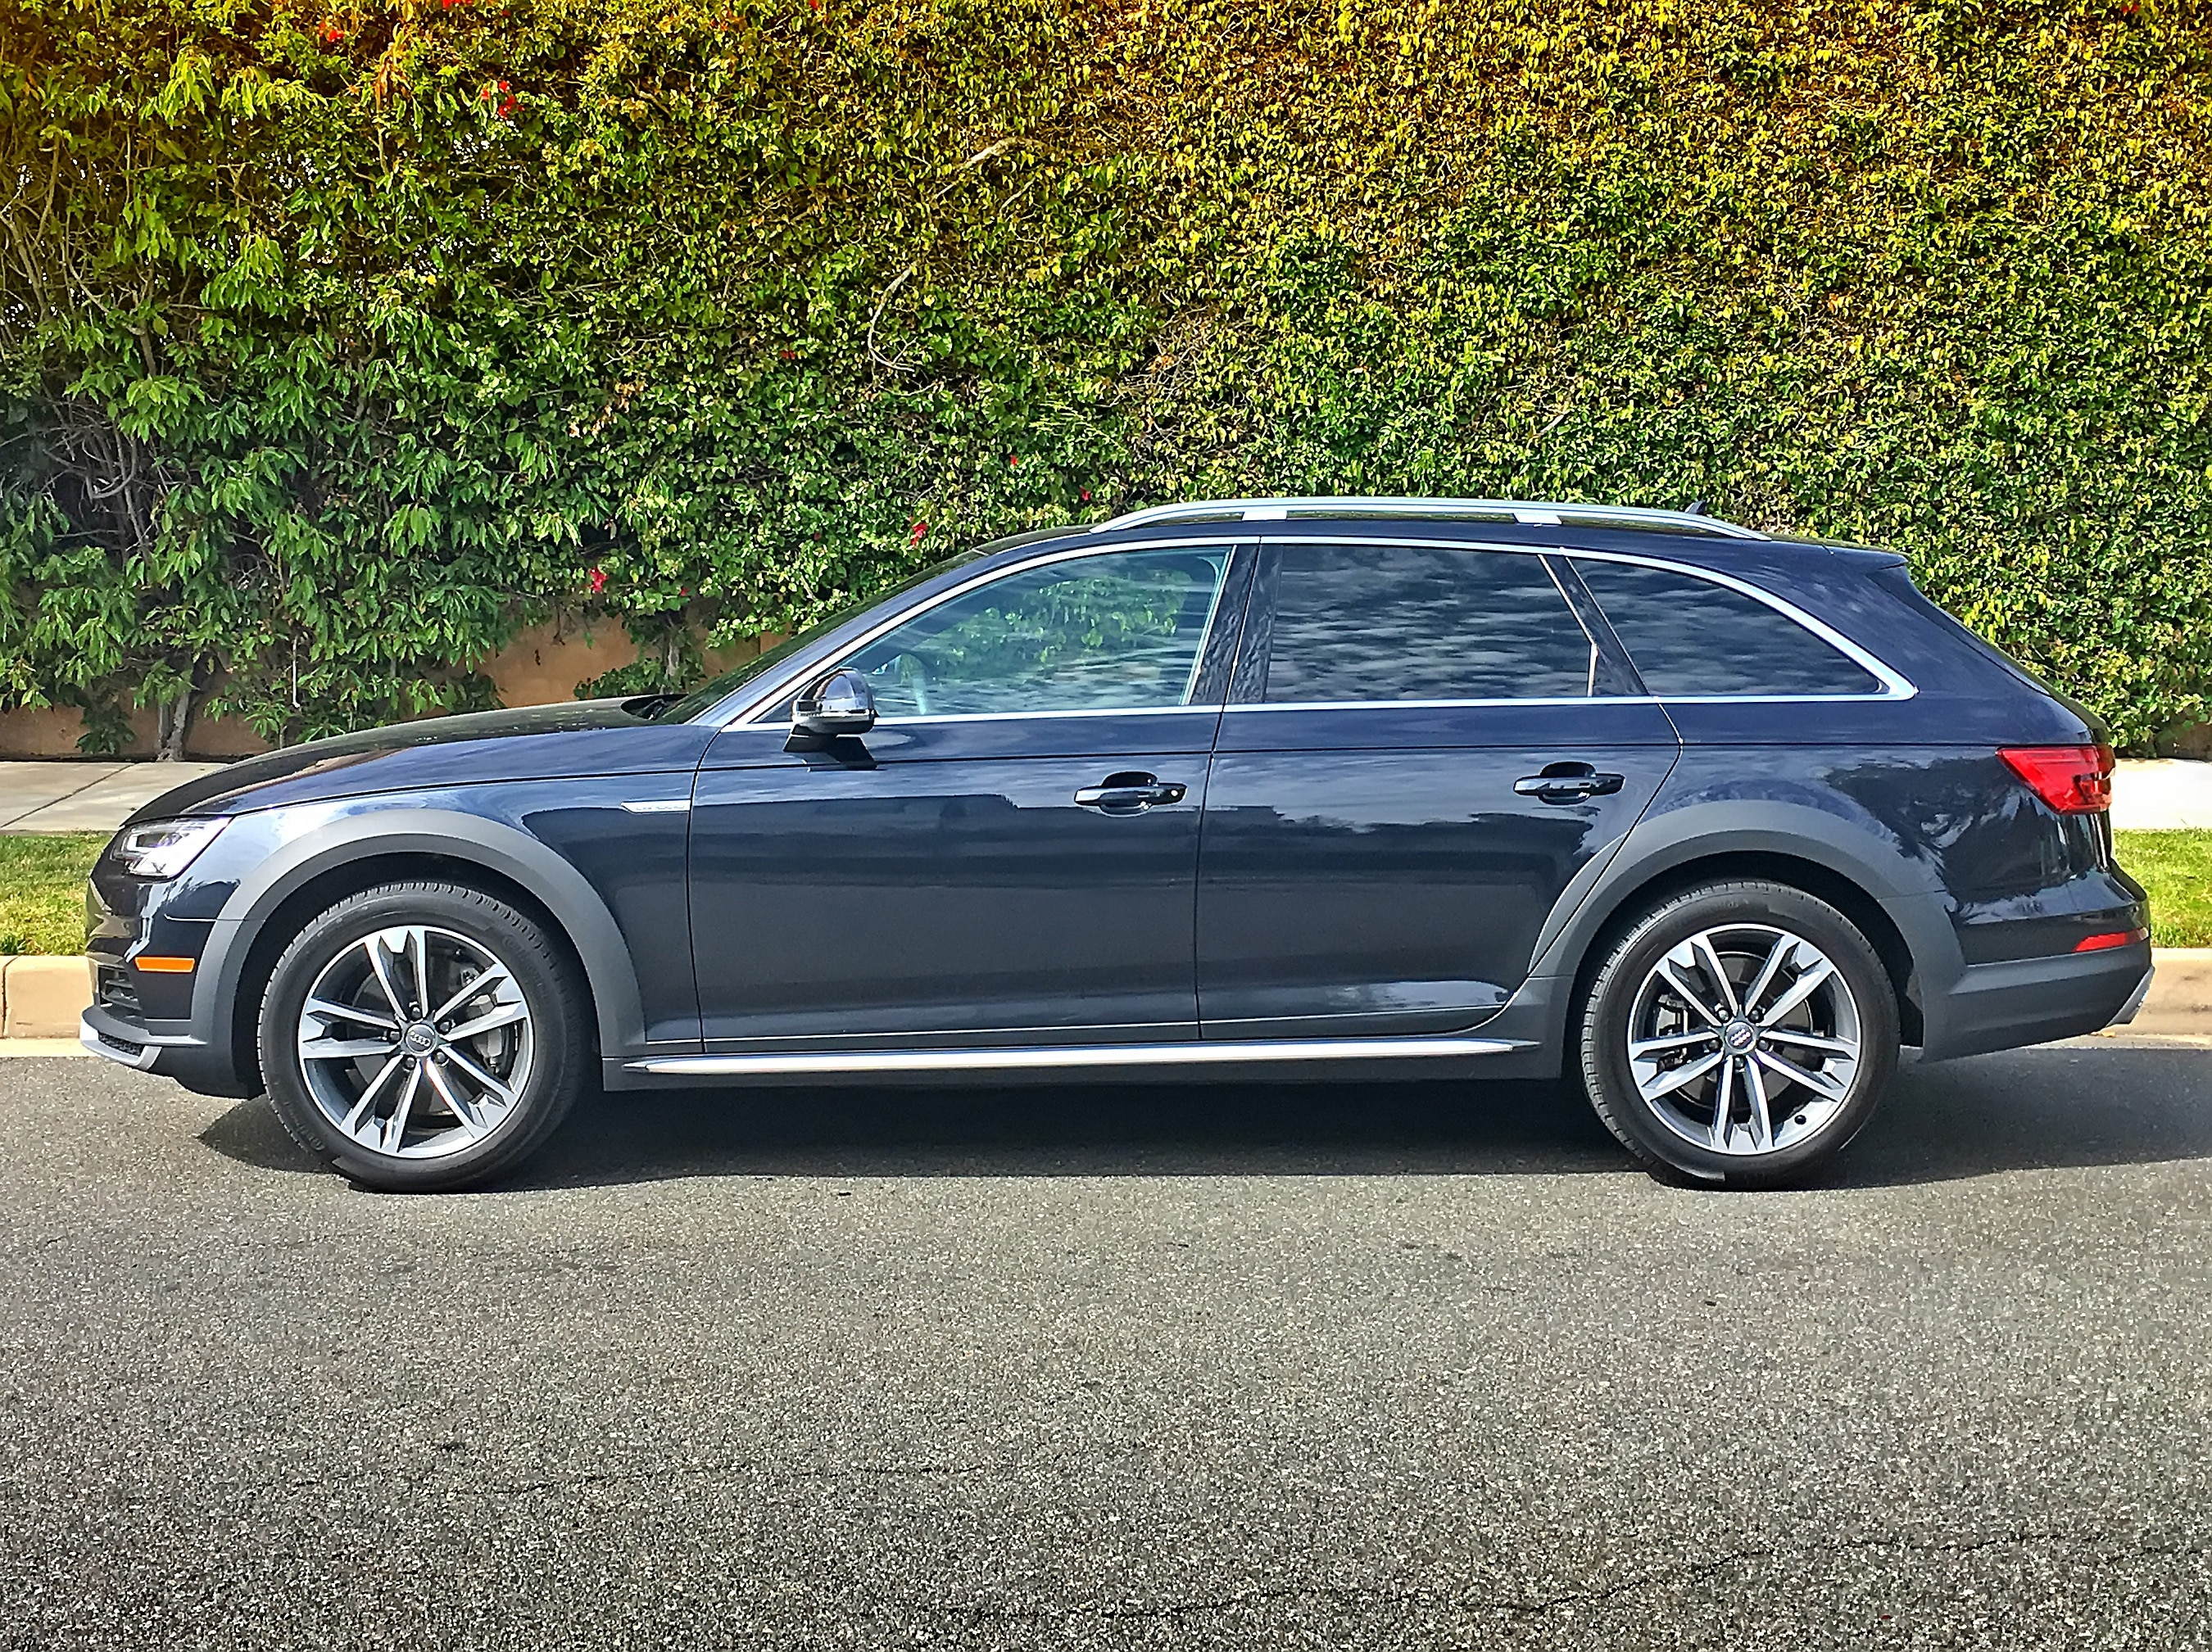 Audi A Allroad One Week Review Automobile Magazine - Audi allroad